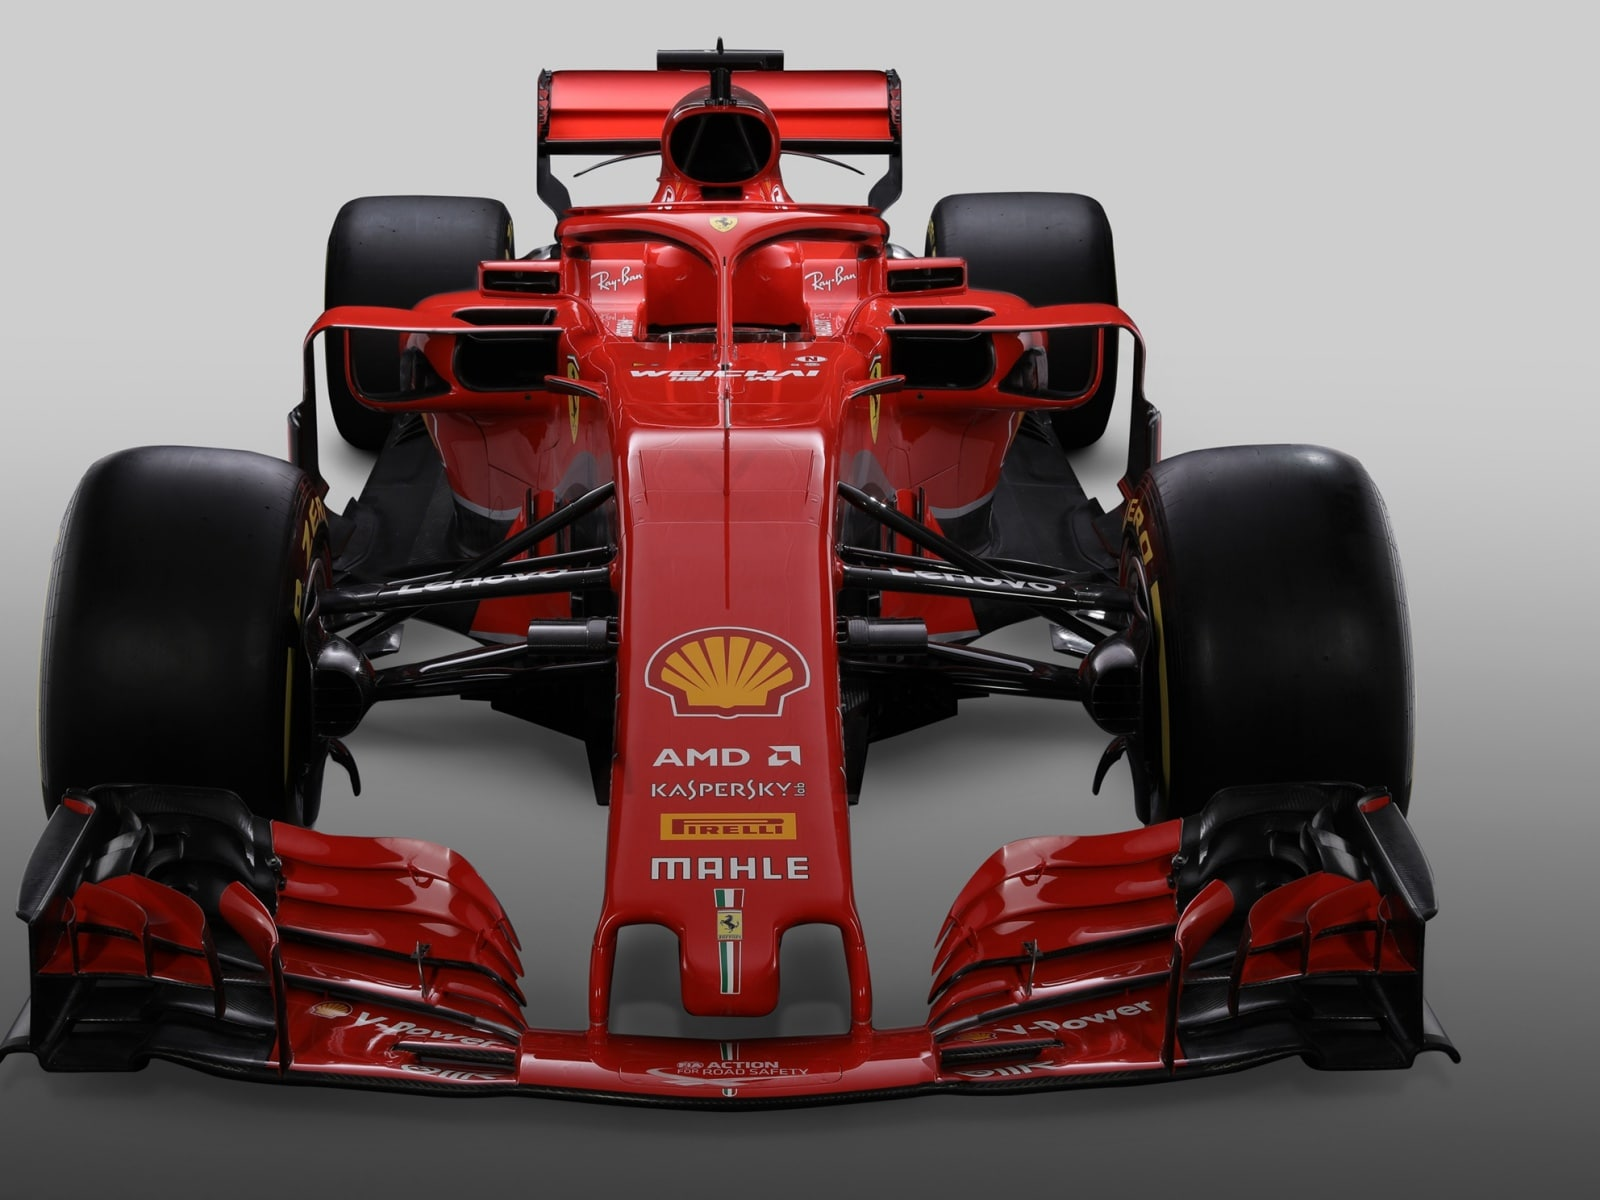 ferrari sf71h la f1 di maranello per il 2018 formula 1 panoramauto. Black Bedroom Furniture Sets. Home Design Ideas